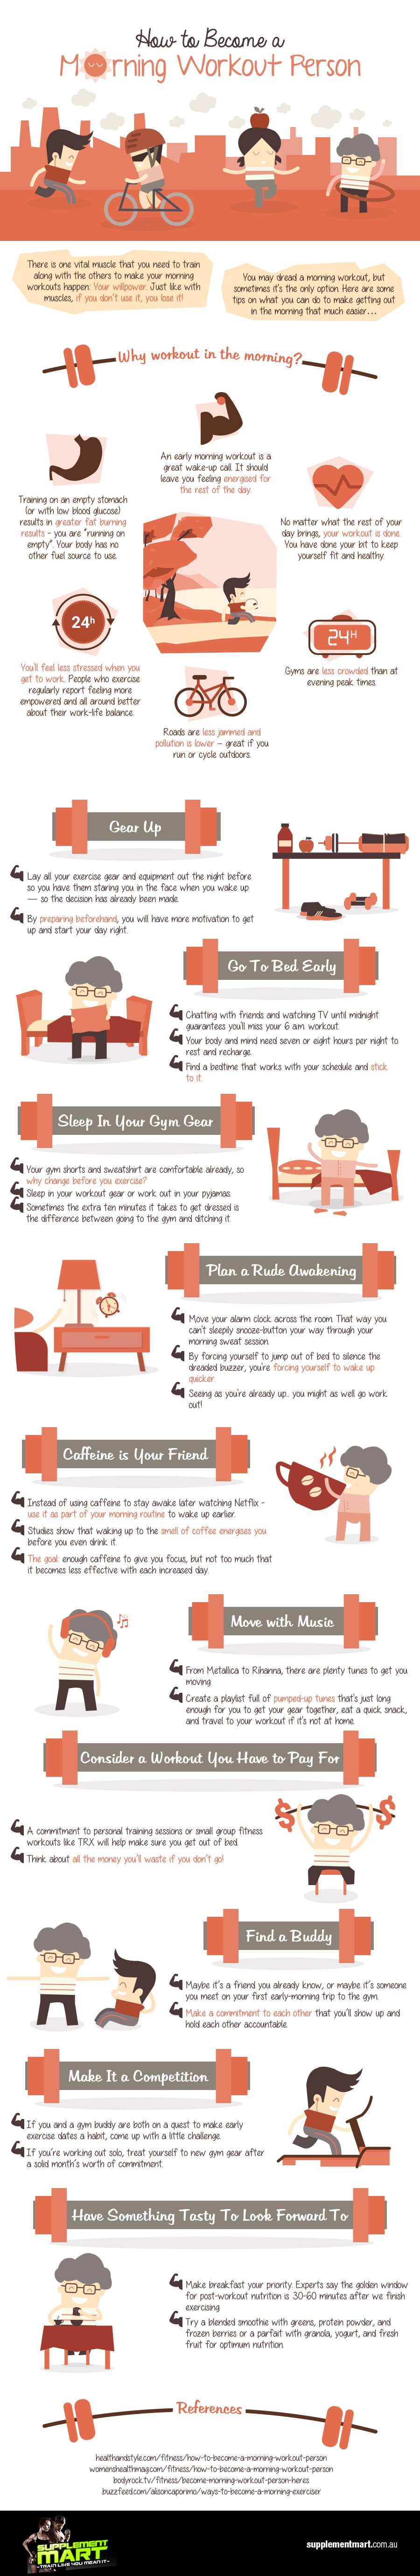 How To Become A Morning Workout Person Infographic Morning Workout Effective Workout Plan Effective Workouts